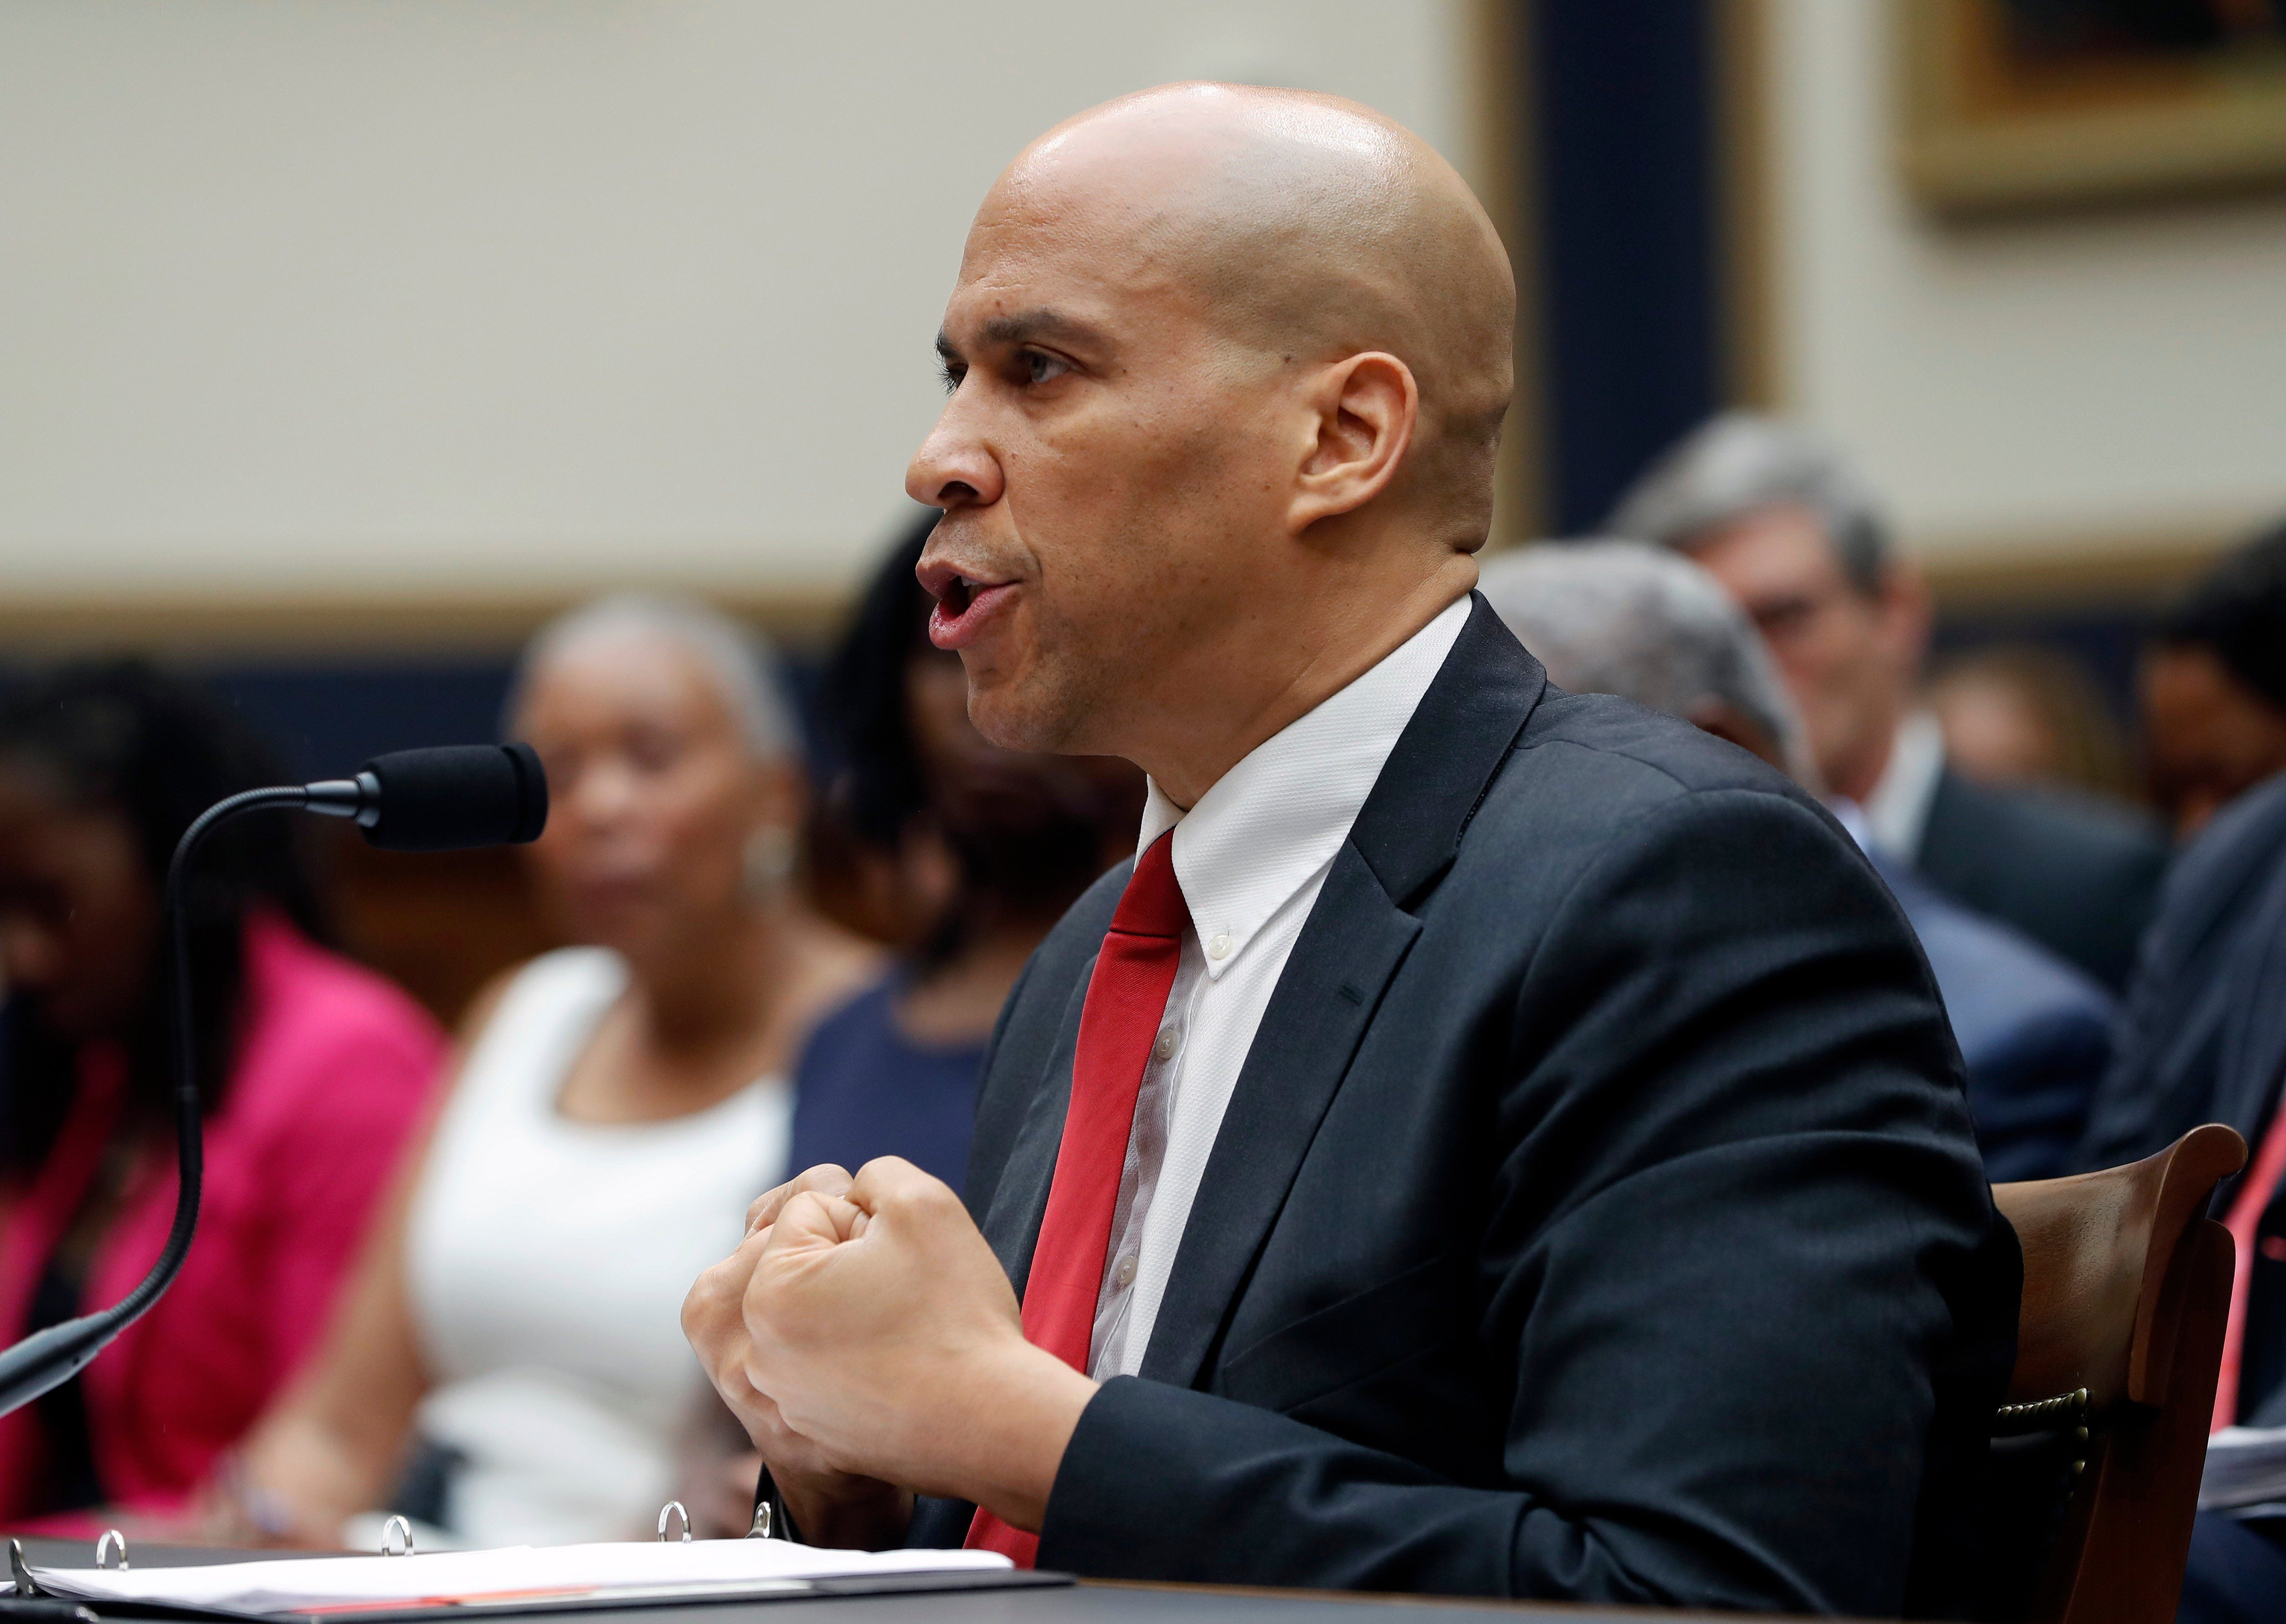 Democratic Presidential candidate Sen. Cory Booker, D-N.J., testifies about reparation for the descendants of slaves during a hearing before the House Judiciary Subcommittee on the Constitution, Civil Rights and Civil Liberties, at the Capitol in…